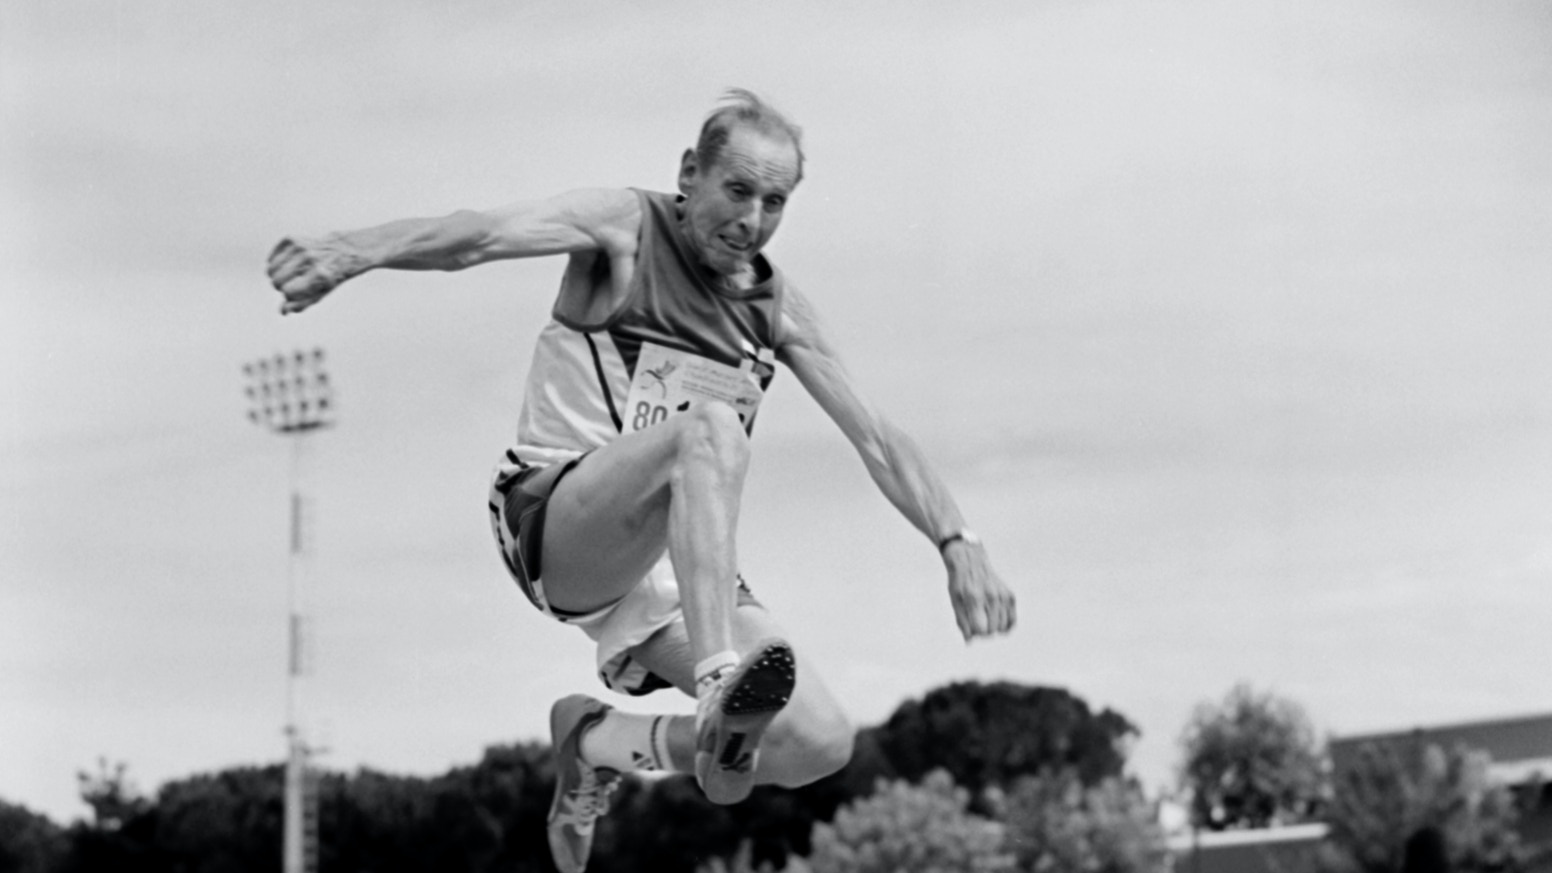 Racing Age is a documentary photography book about masters track & field athletes of retirement age and older who are redefining the stereotypes and limitations of age.